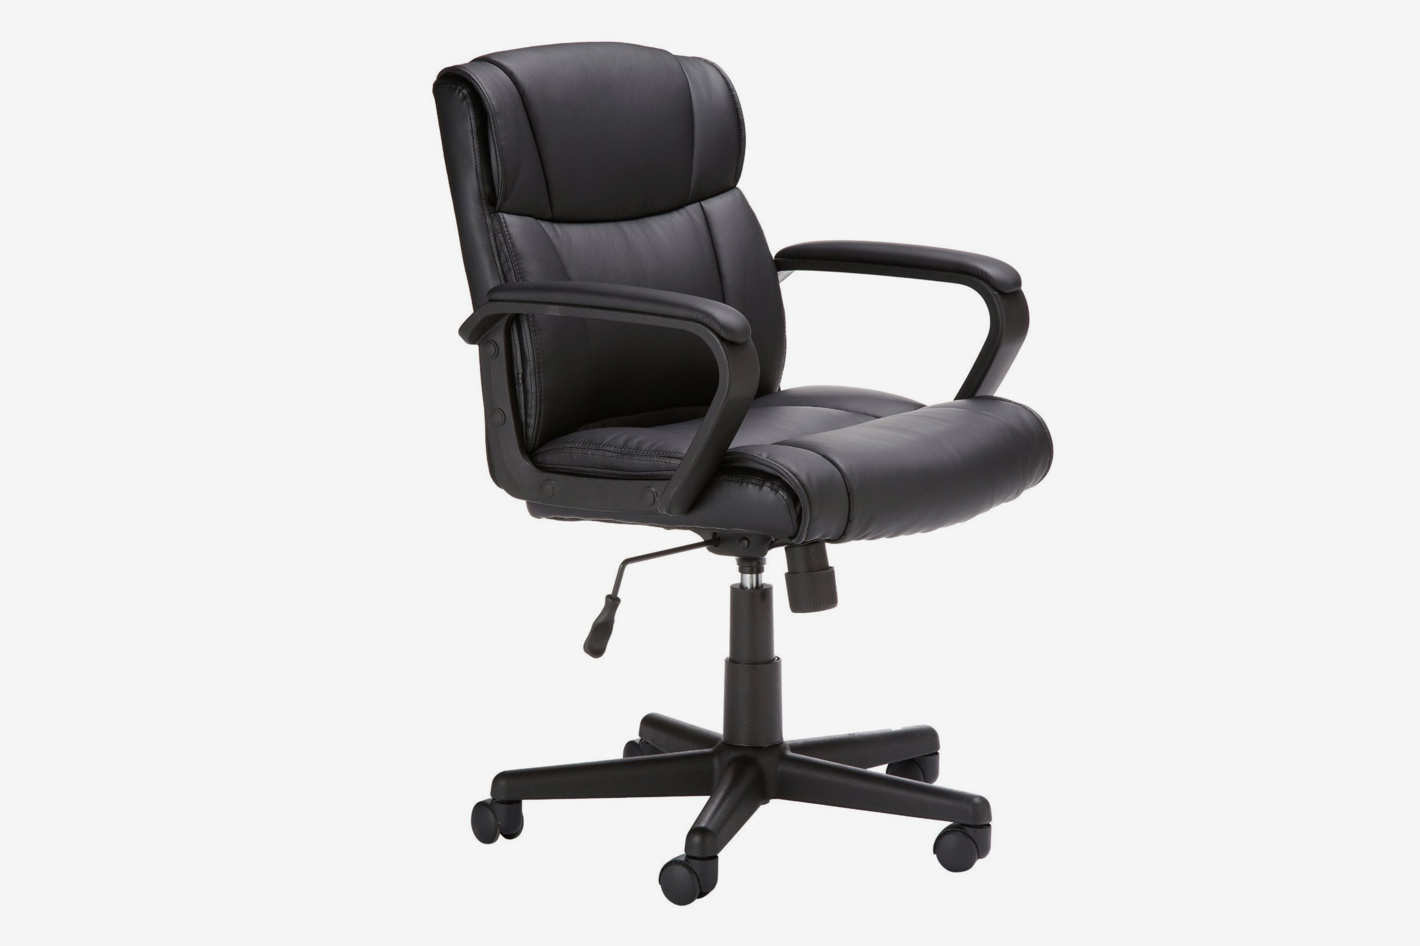 Best ideas about Best Home Office Chair . Save or Pin 15 Best fice Chairs and Home fice Chairs 2019 Now.